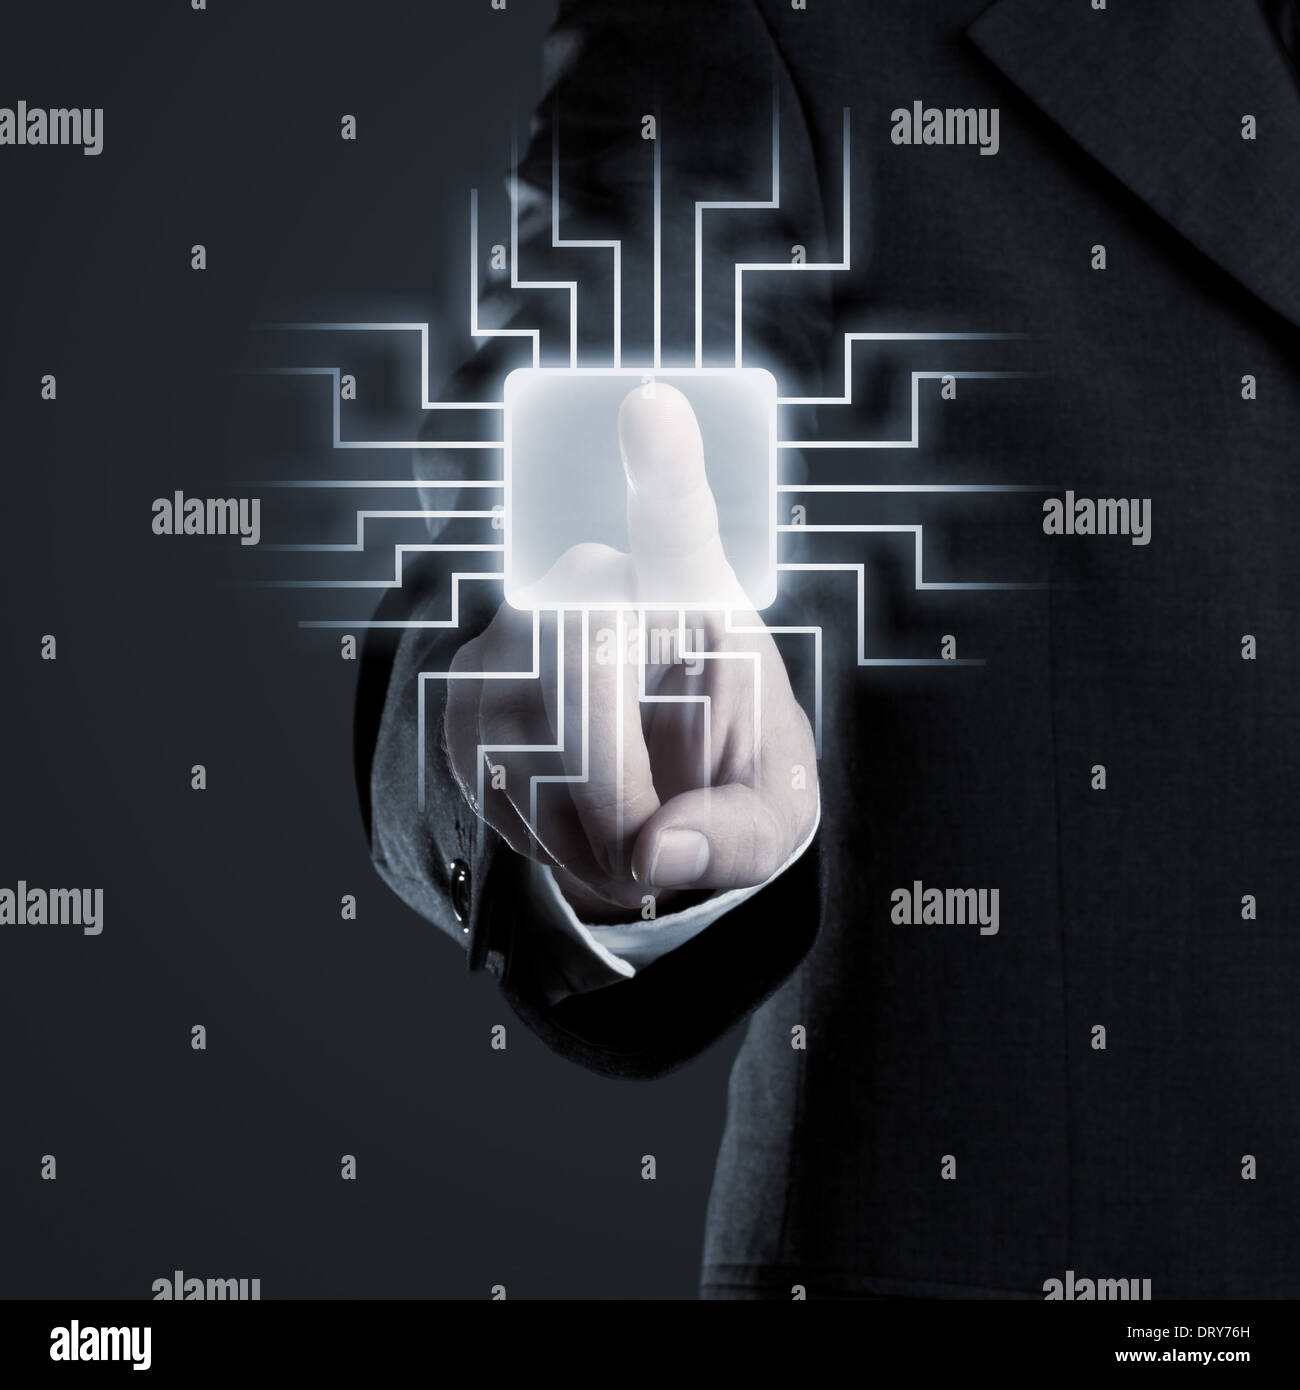 Businessman navigating network on futuristic touchscreen - Stock Image